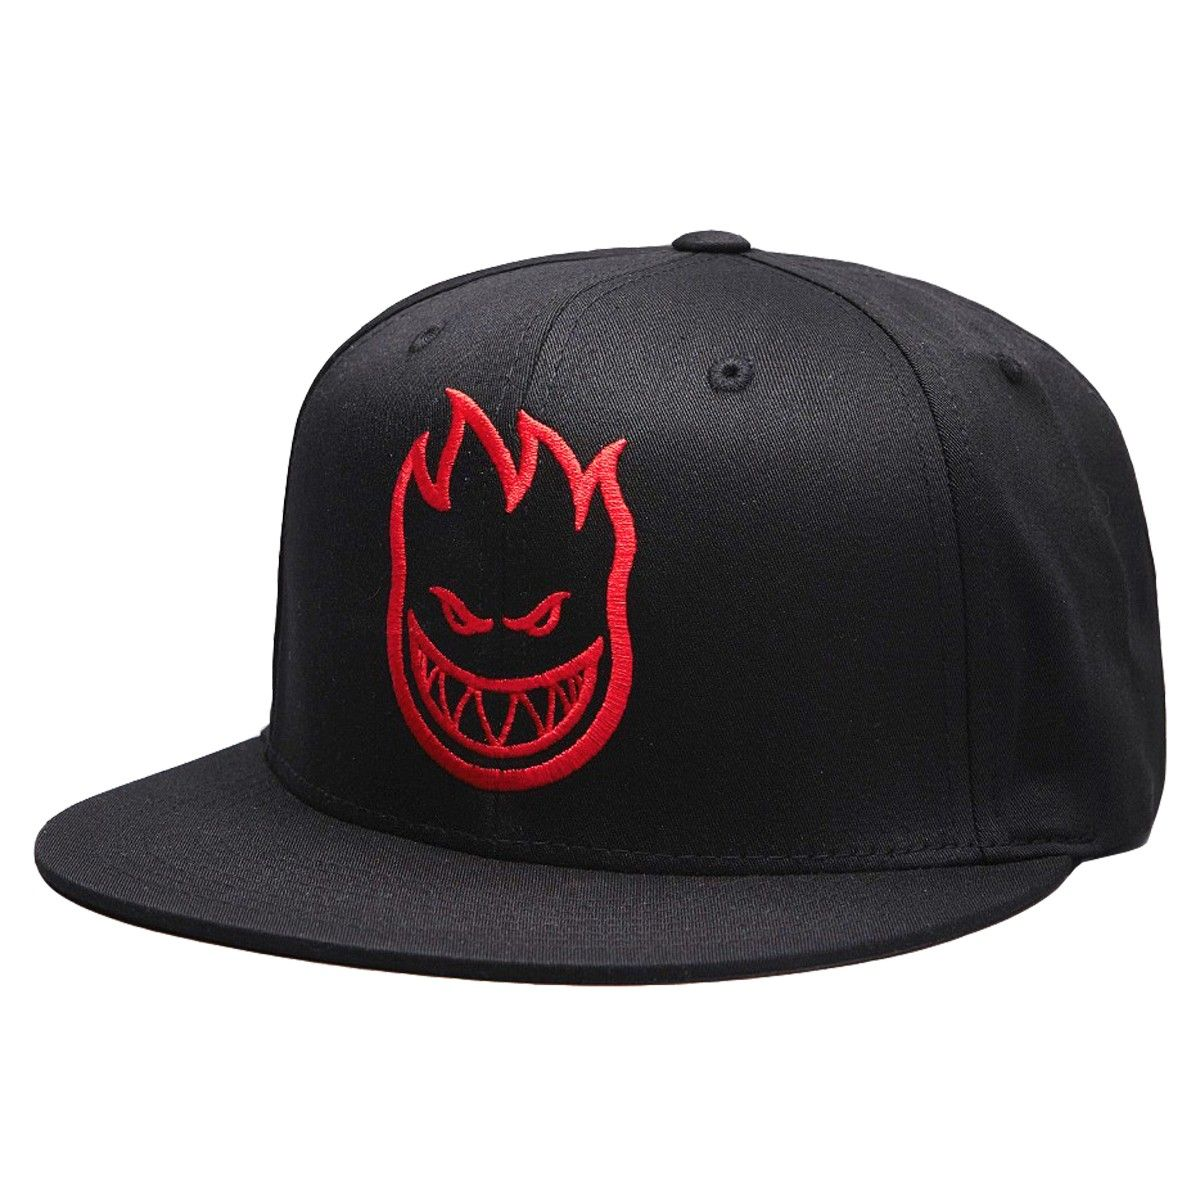 Spitfire Cap Firehead snapback black red grey casquette ajustable ... 752d5382834